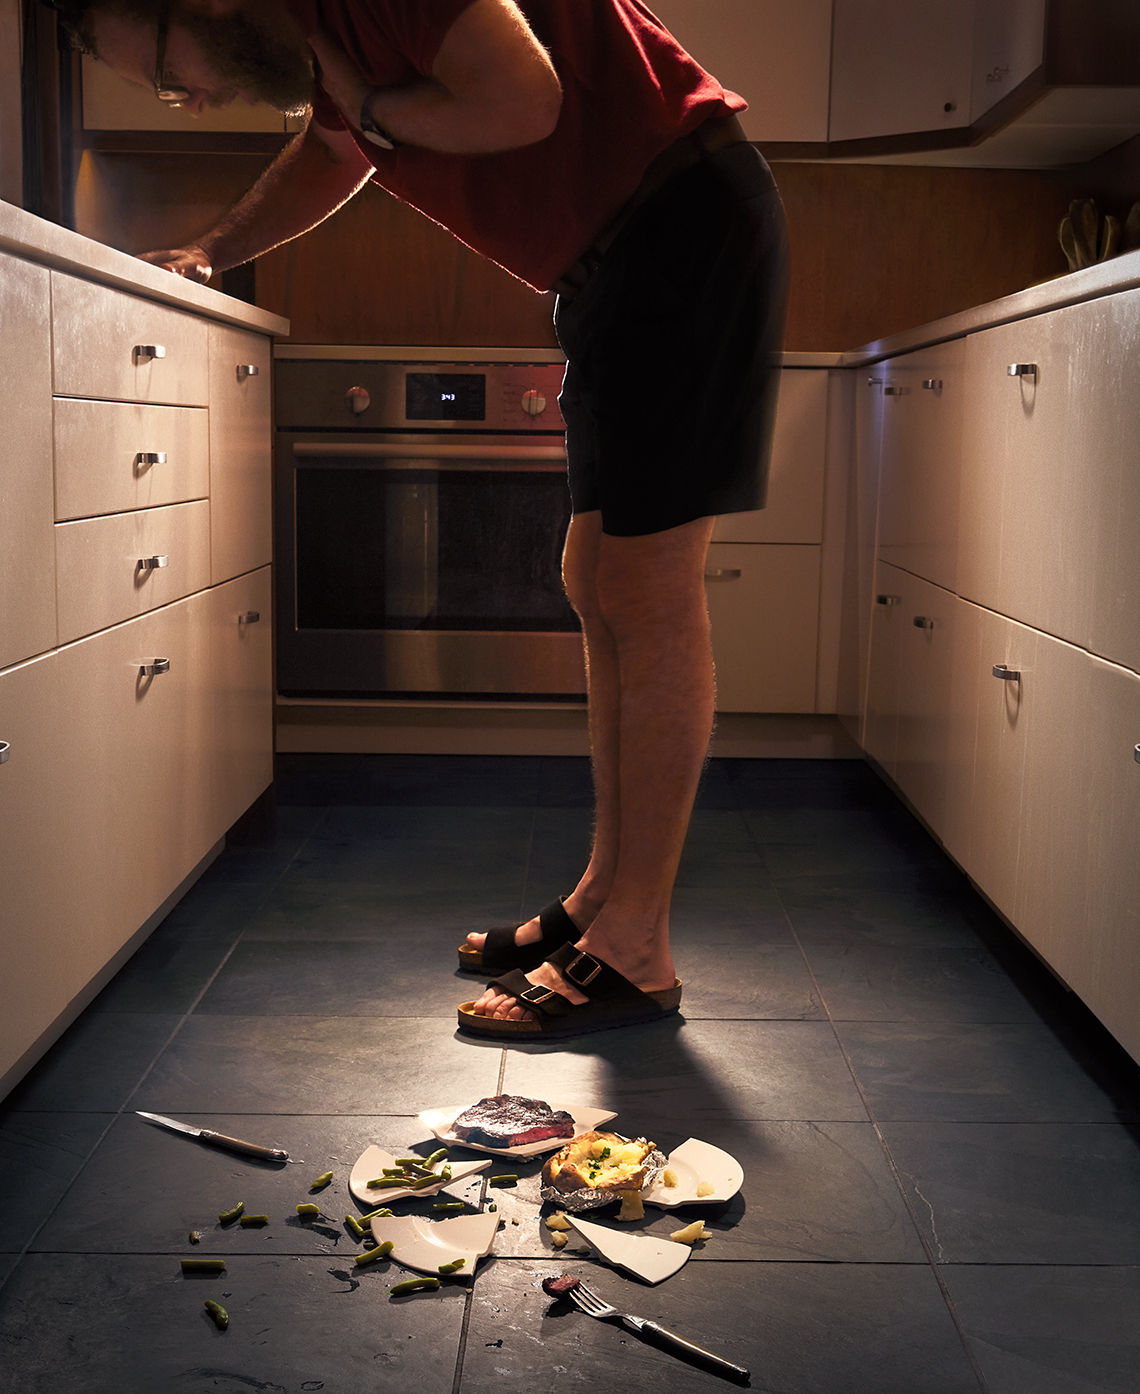 man in his kitchen bending over and choking on food, there is a broken plate of food at his feet